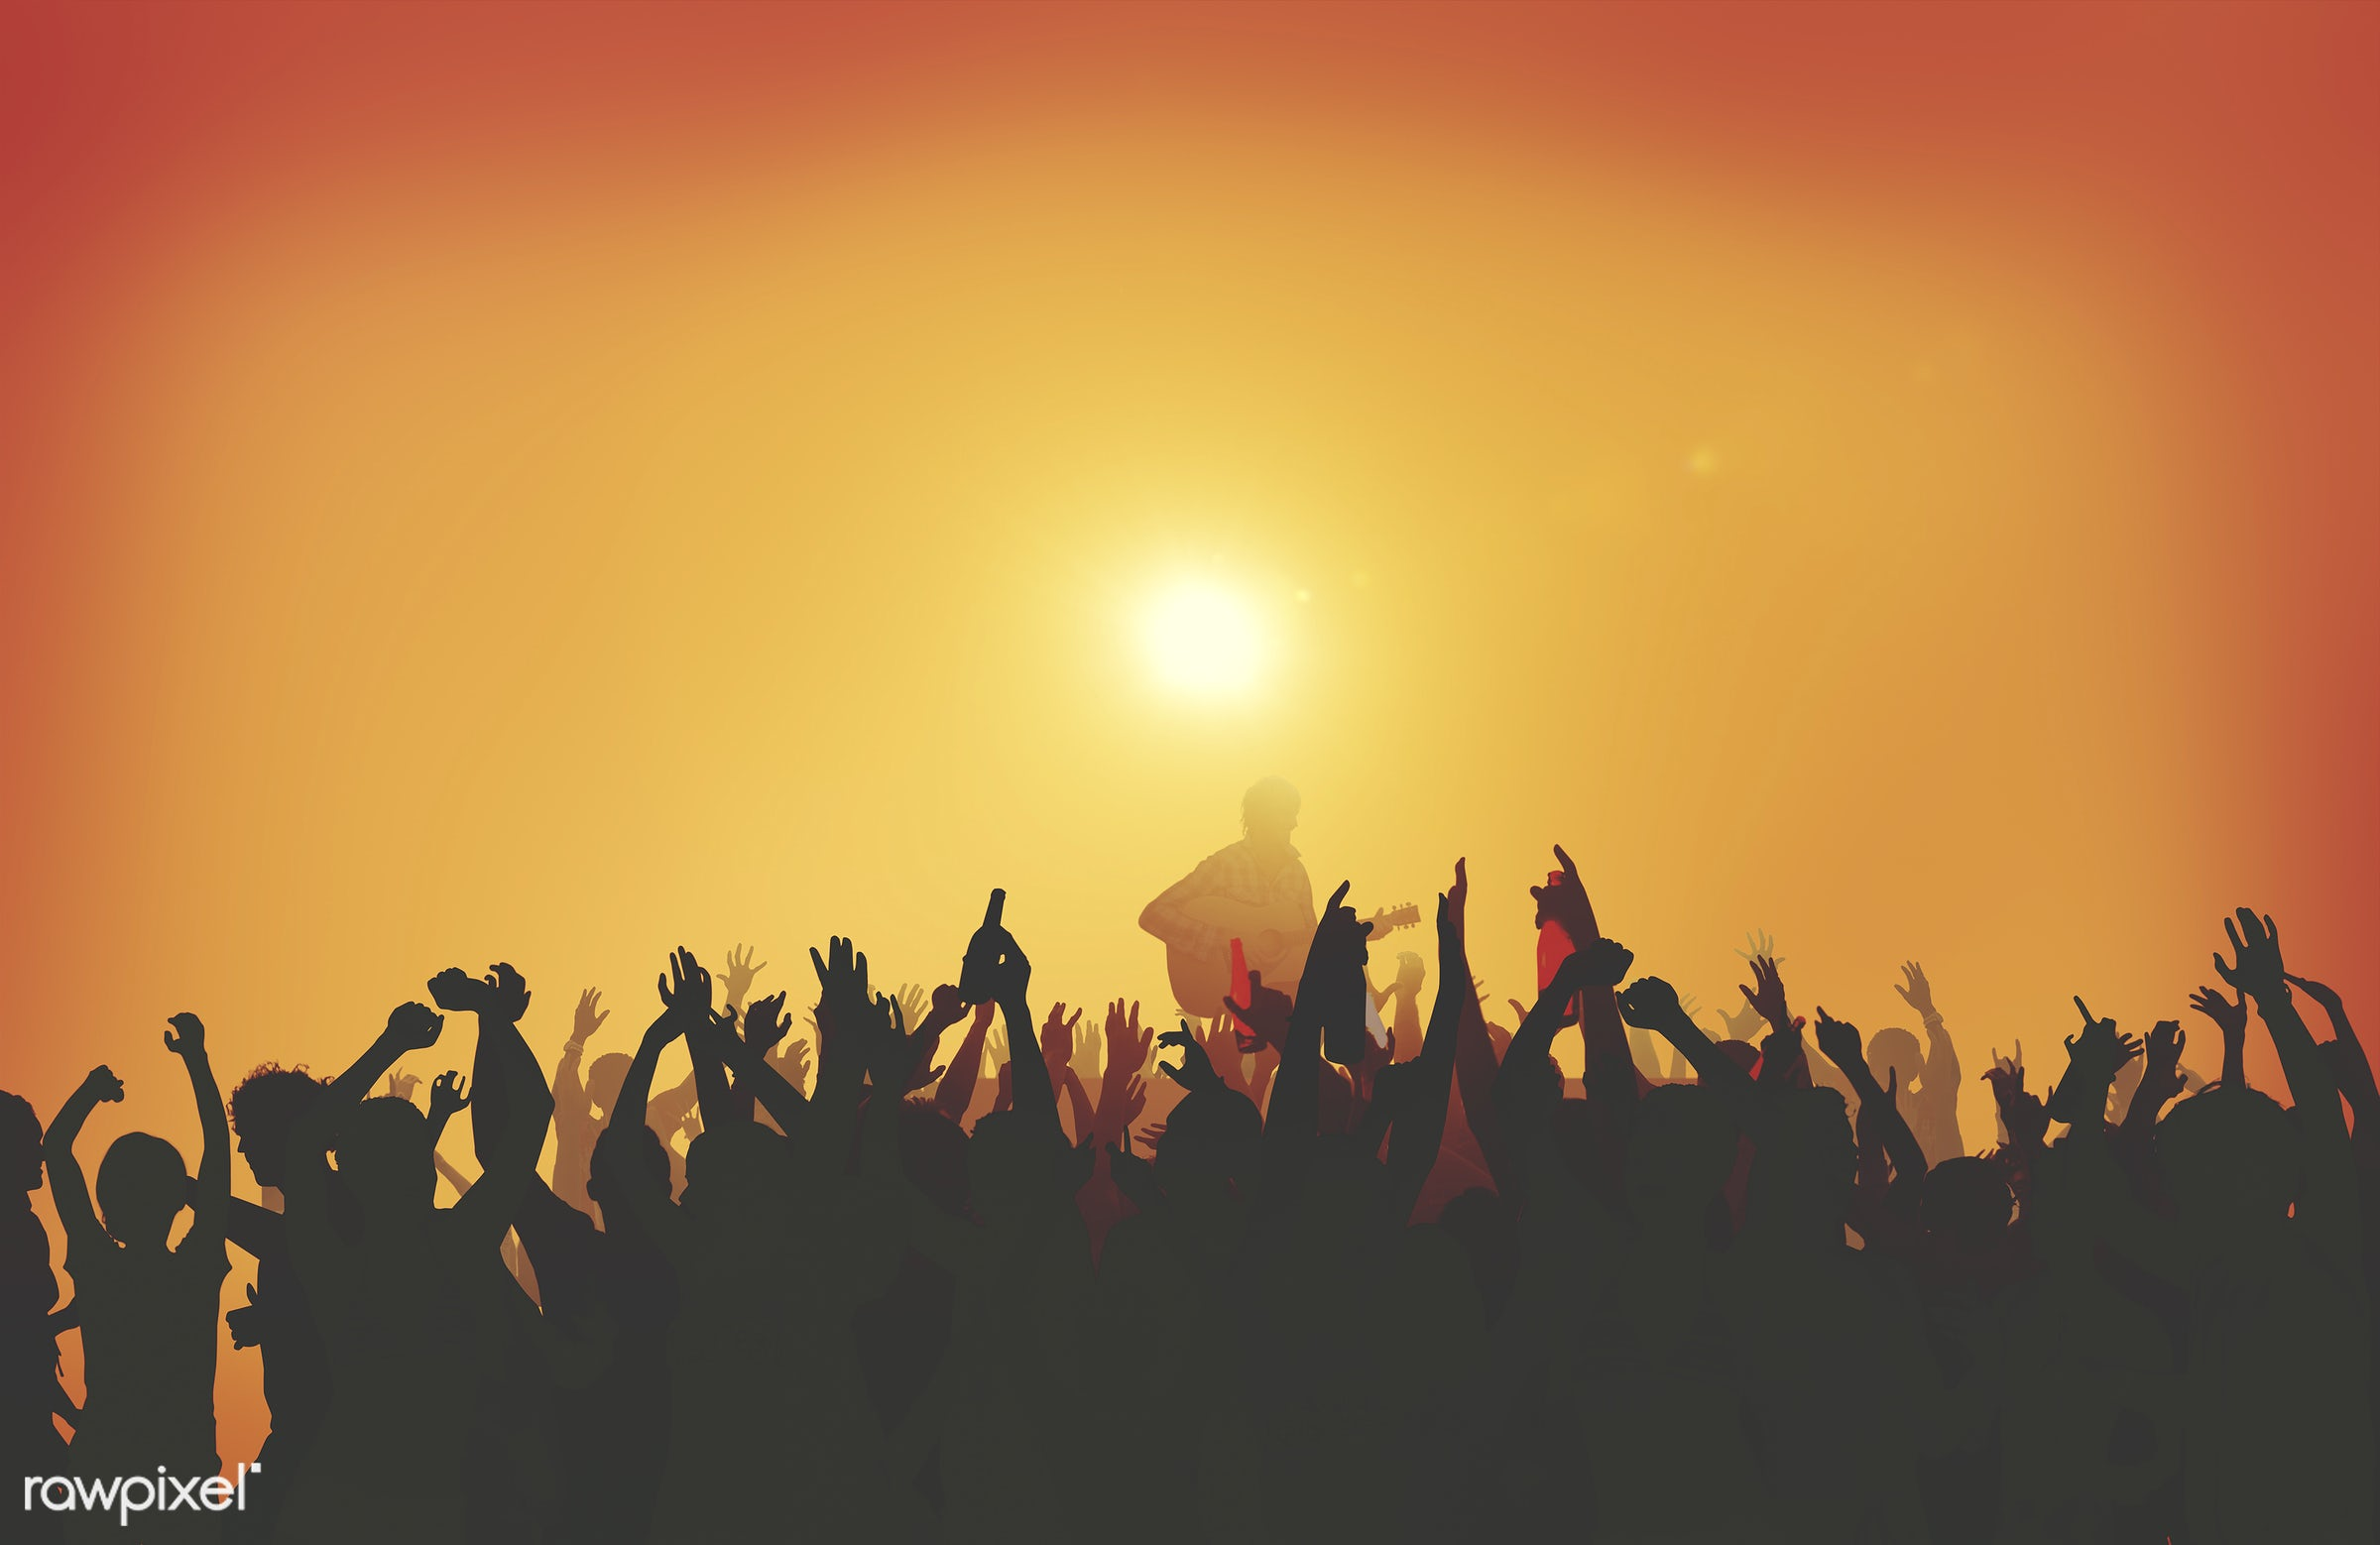 Silhouette of a music concert at sunset - concert, sunrise, party, youth, crowd, music, dancing, singing, musician,...